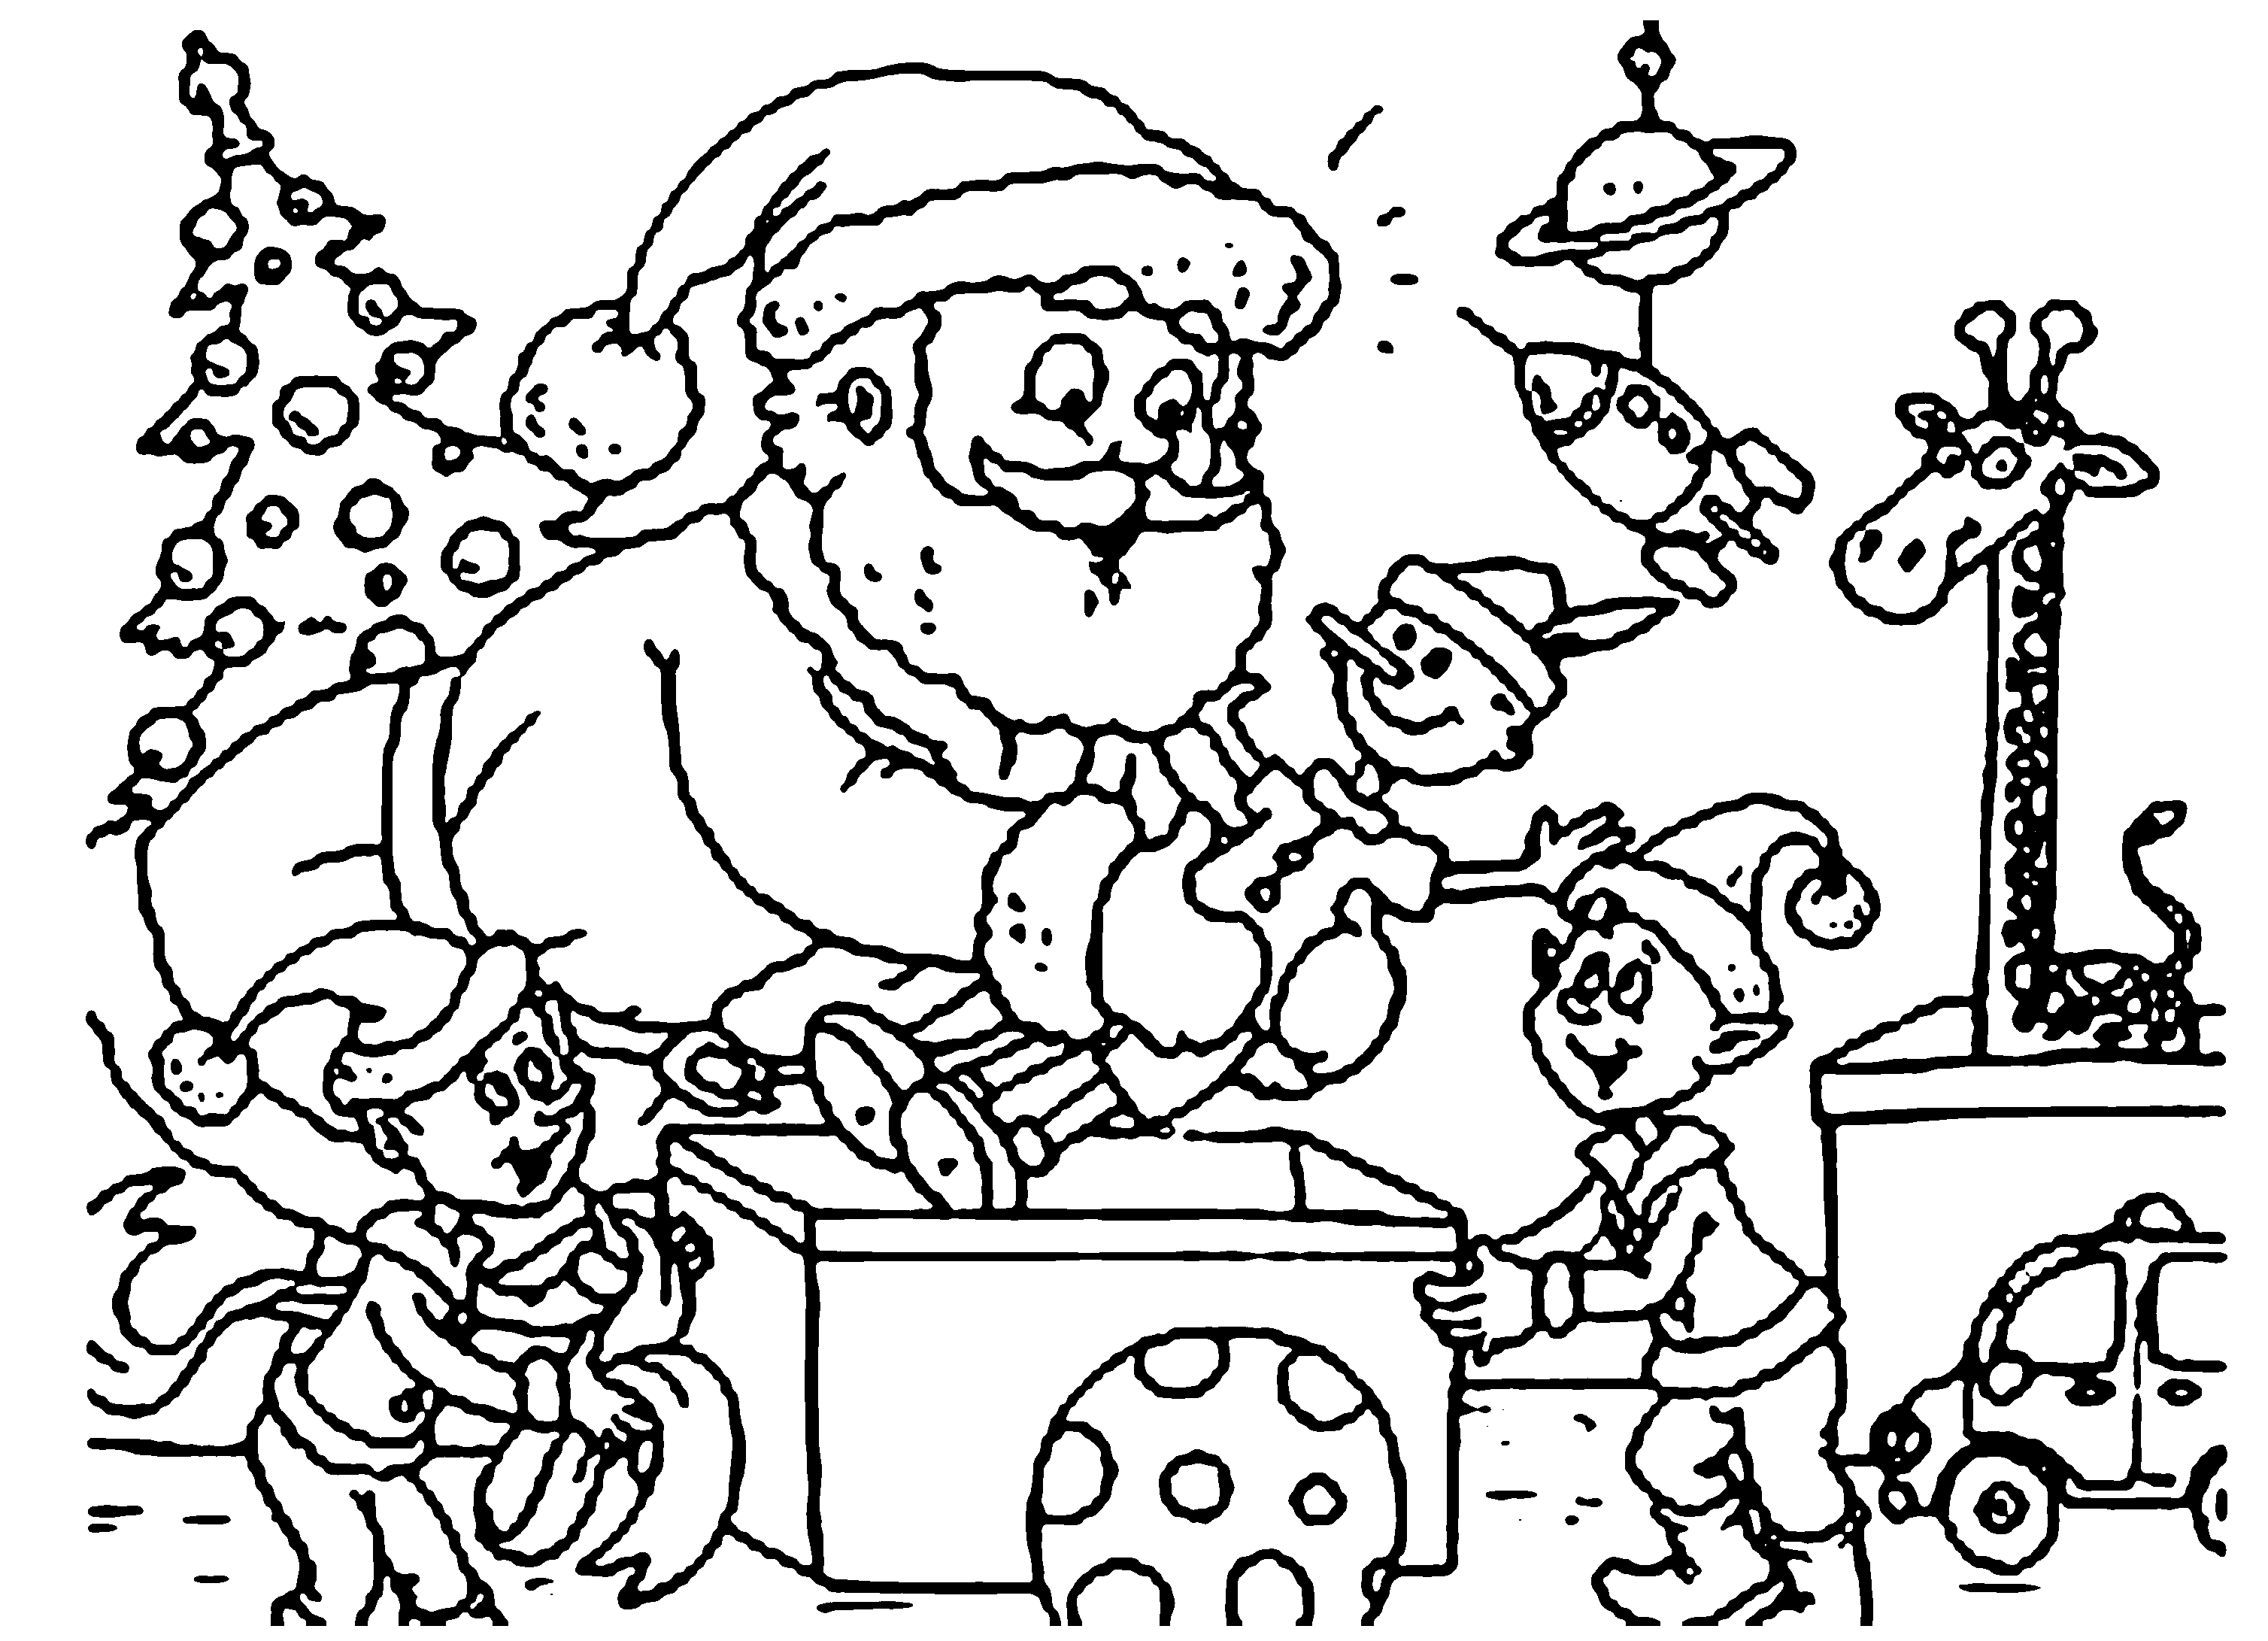 Santa And Elf Christmas Coloring Pages Printable | Christmas ...